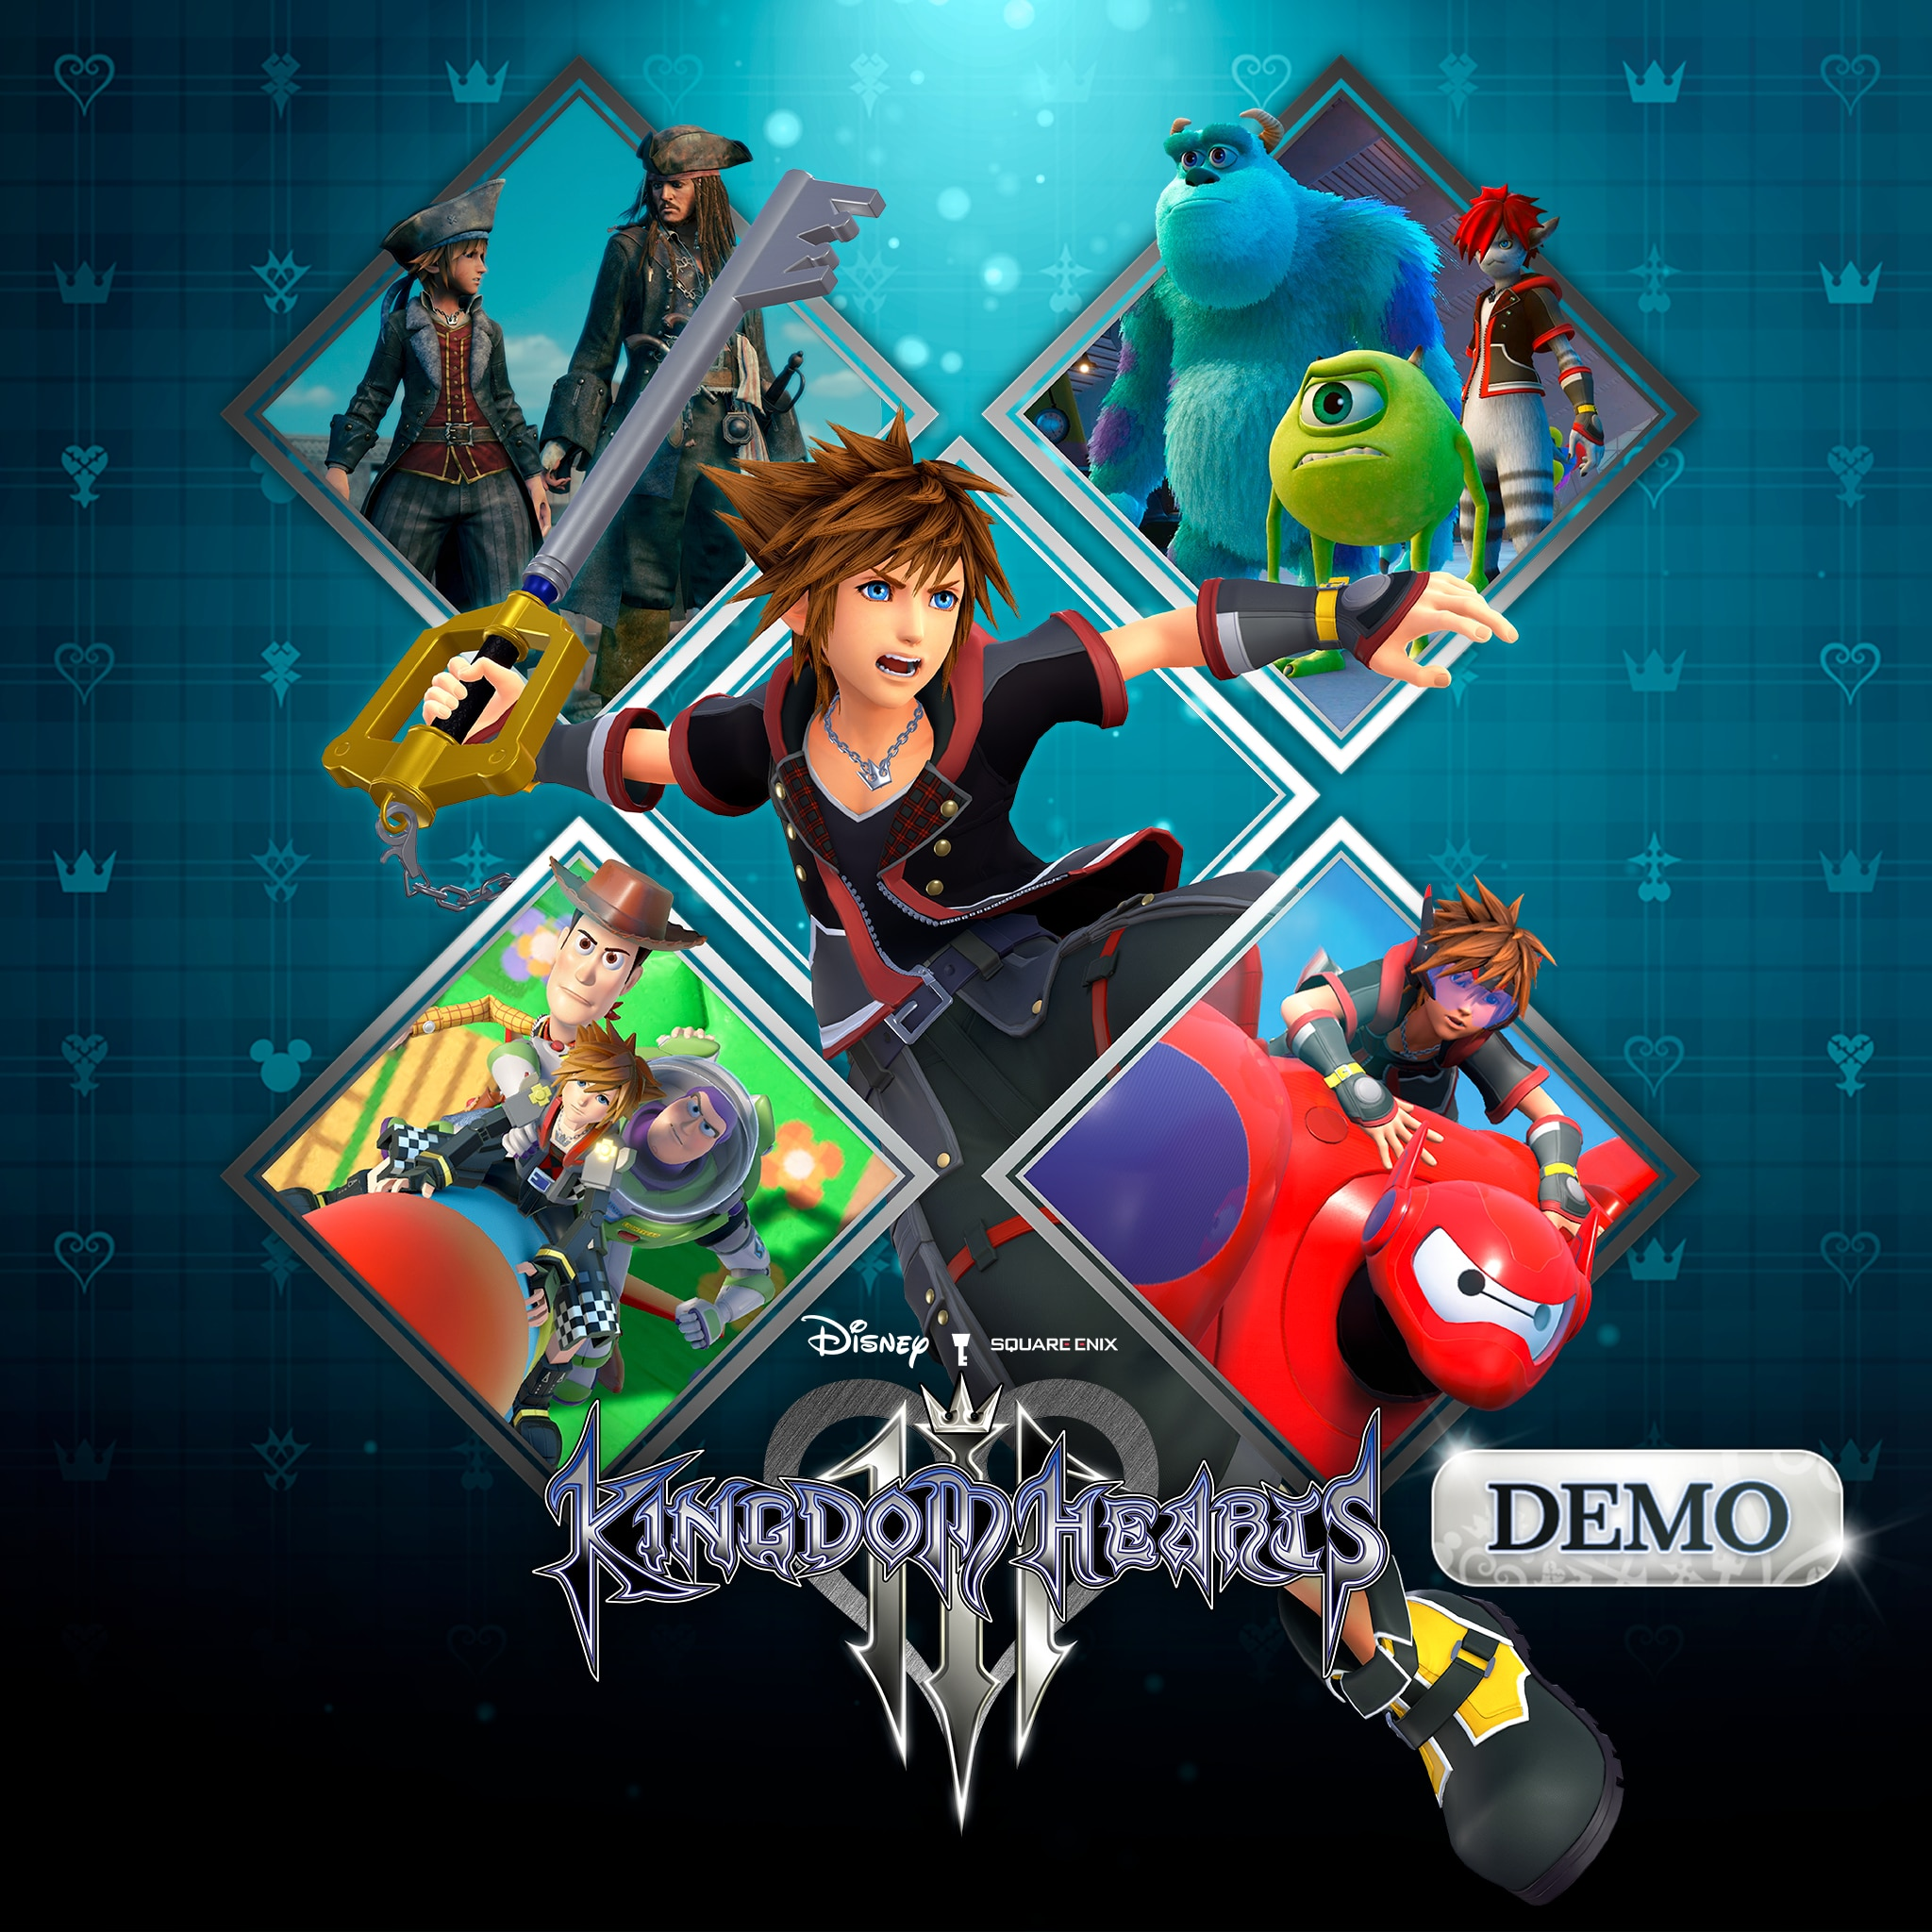 Demo do KINGDOM HEARTS III